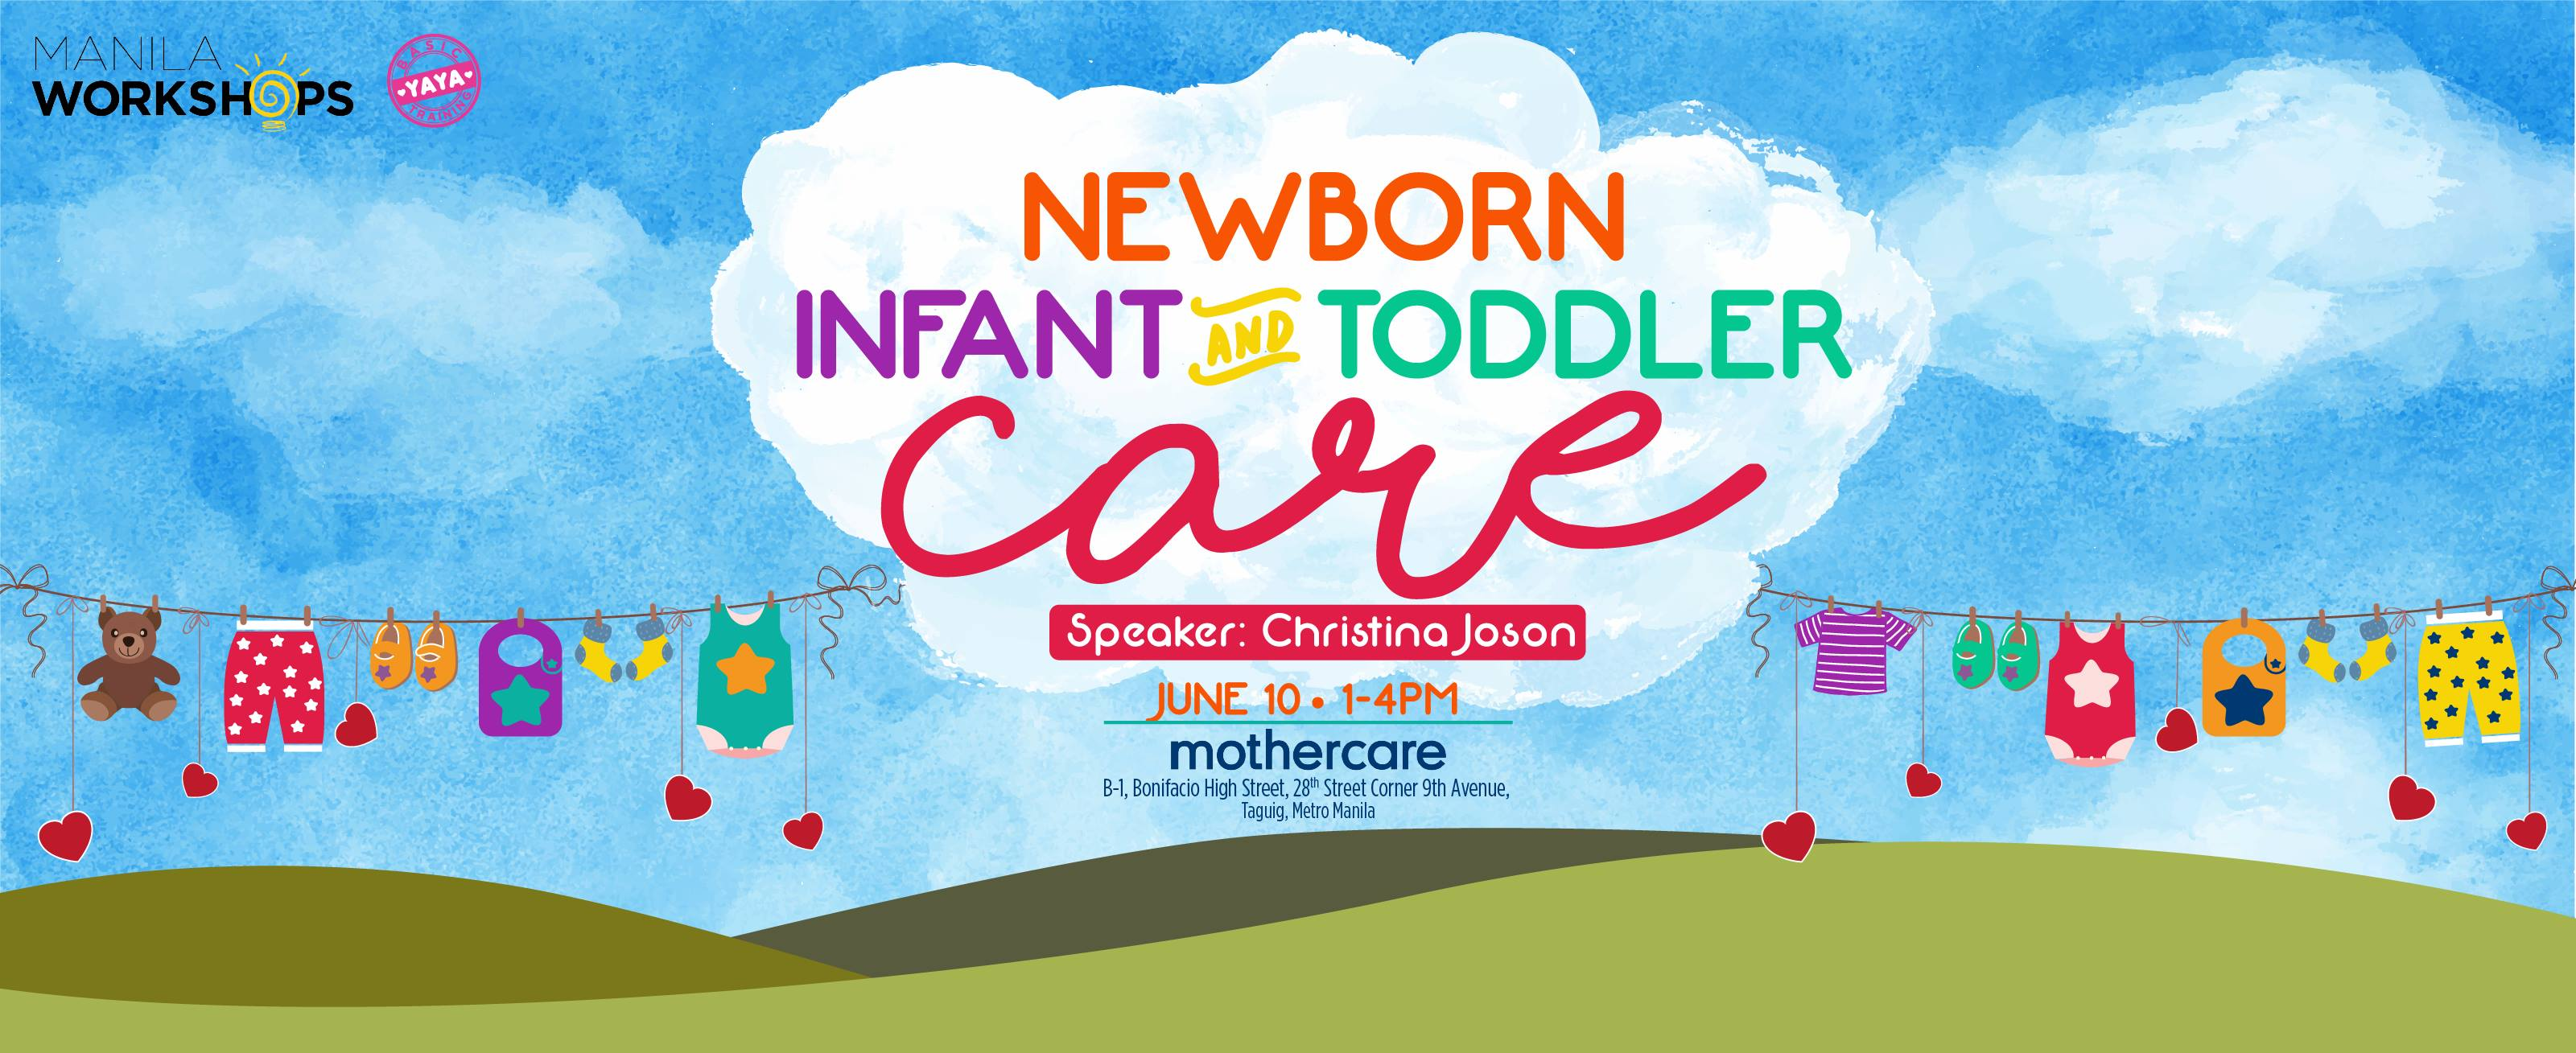 NEWBORN: INFANT & TODDLER CARE